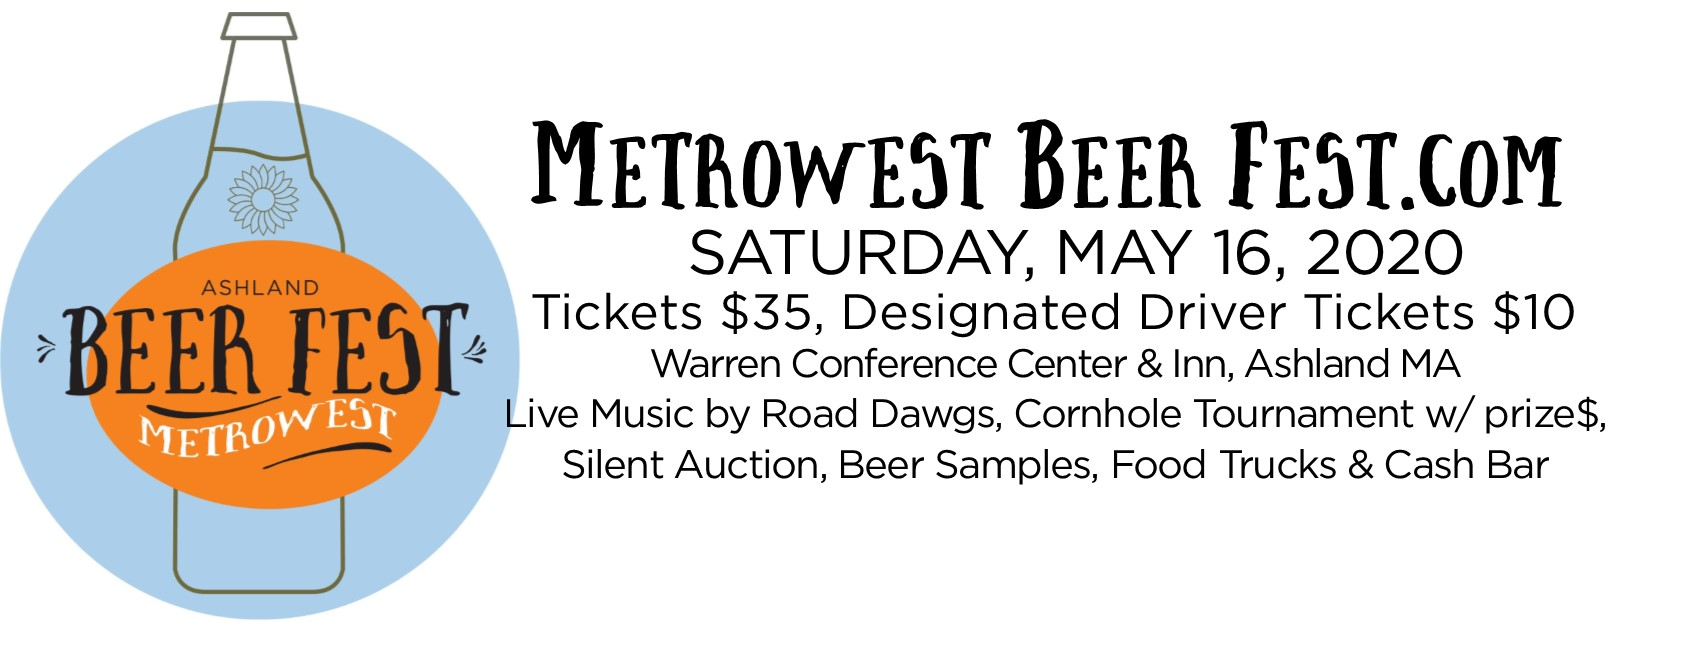 Tickets for MetroWest Beer Fest 2020 in Ashland from BeerFests.com